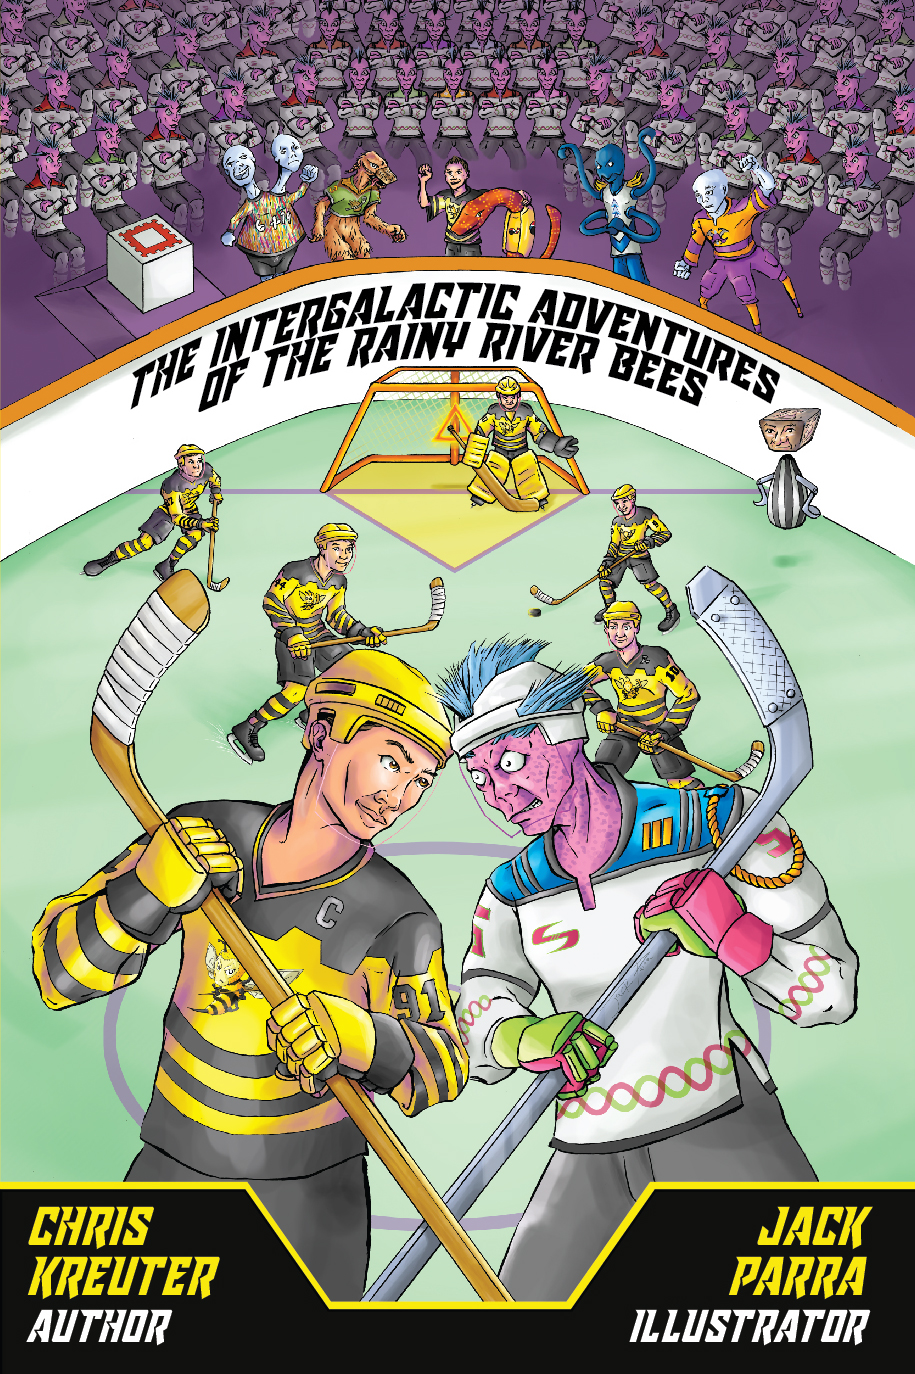 Intergalatic Adventures of the Rainy River Bees - The Rainy River Bees are an elite peewee hockey team. Moments after winning a championship, they get abducted by aliens, aliens that love hockey! They rocket across the universe to play in the Intergalactic Hockey Championship & save...everyone & everything.It's up to the twelve Bees and their new friends to save the day.